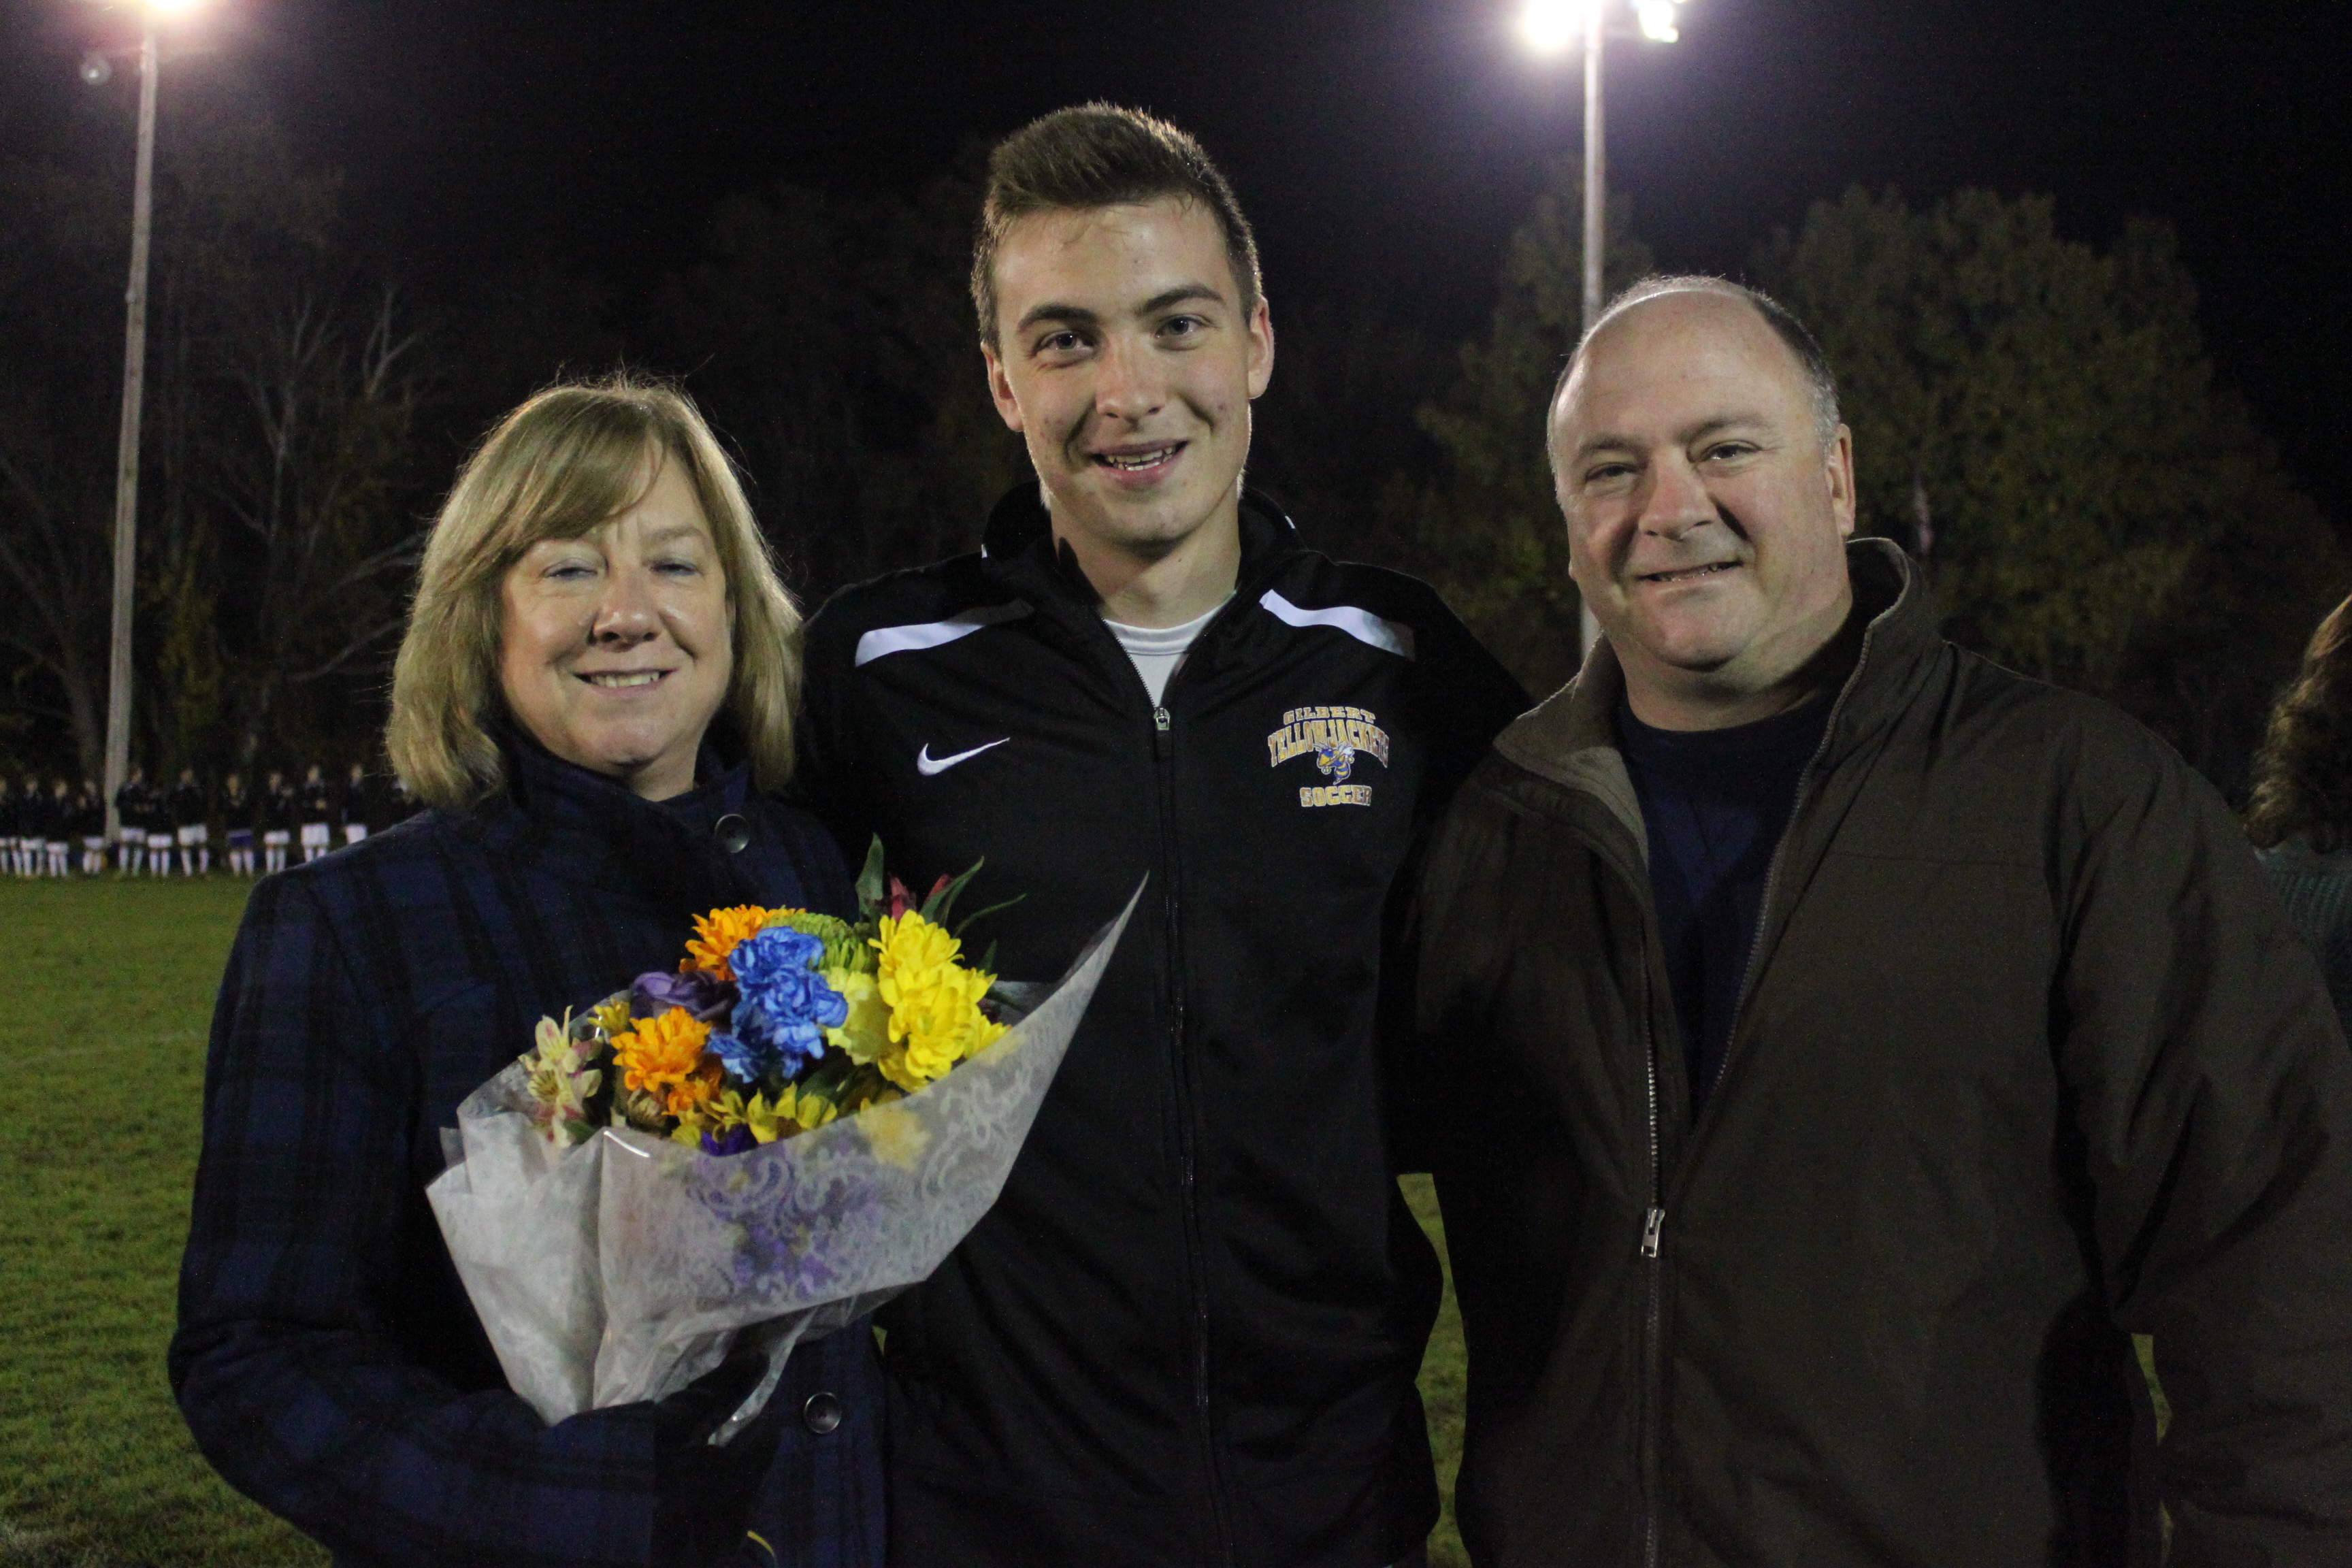 Parents with soccer player on Senior night 2014